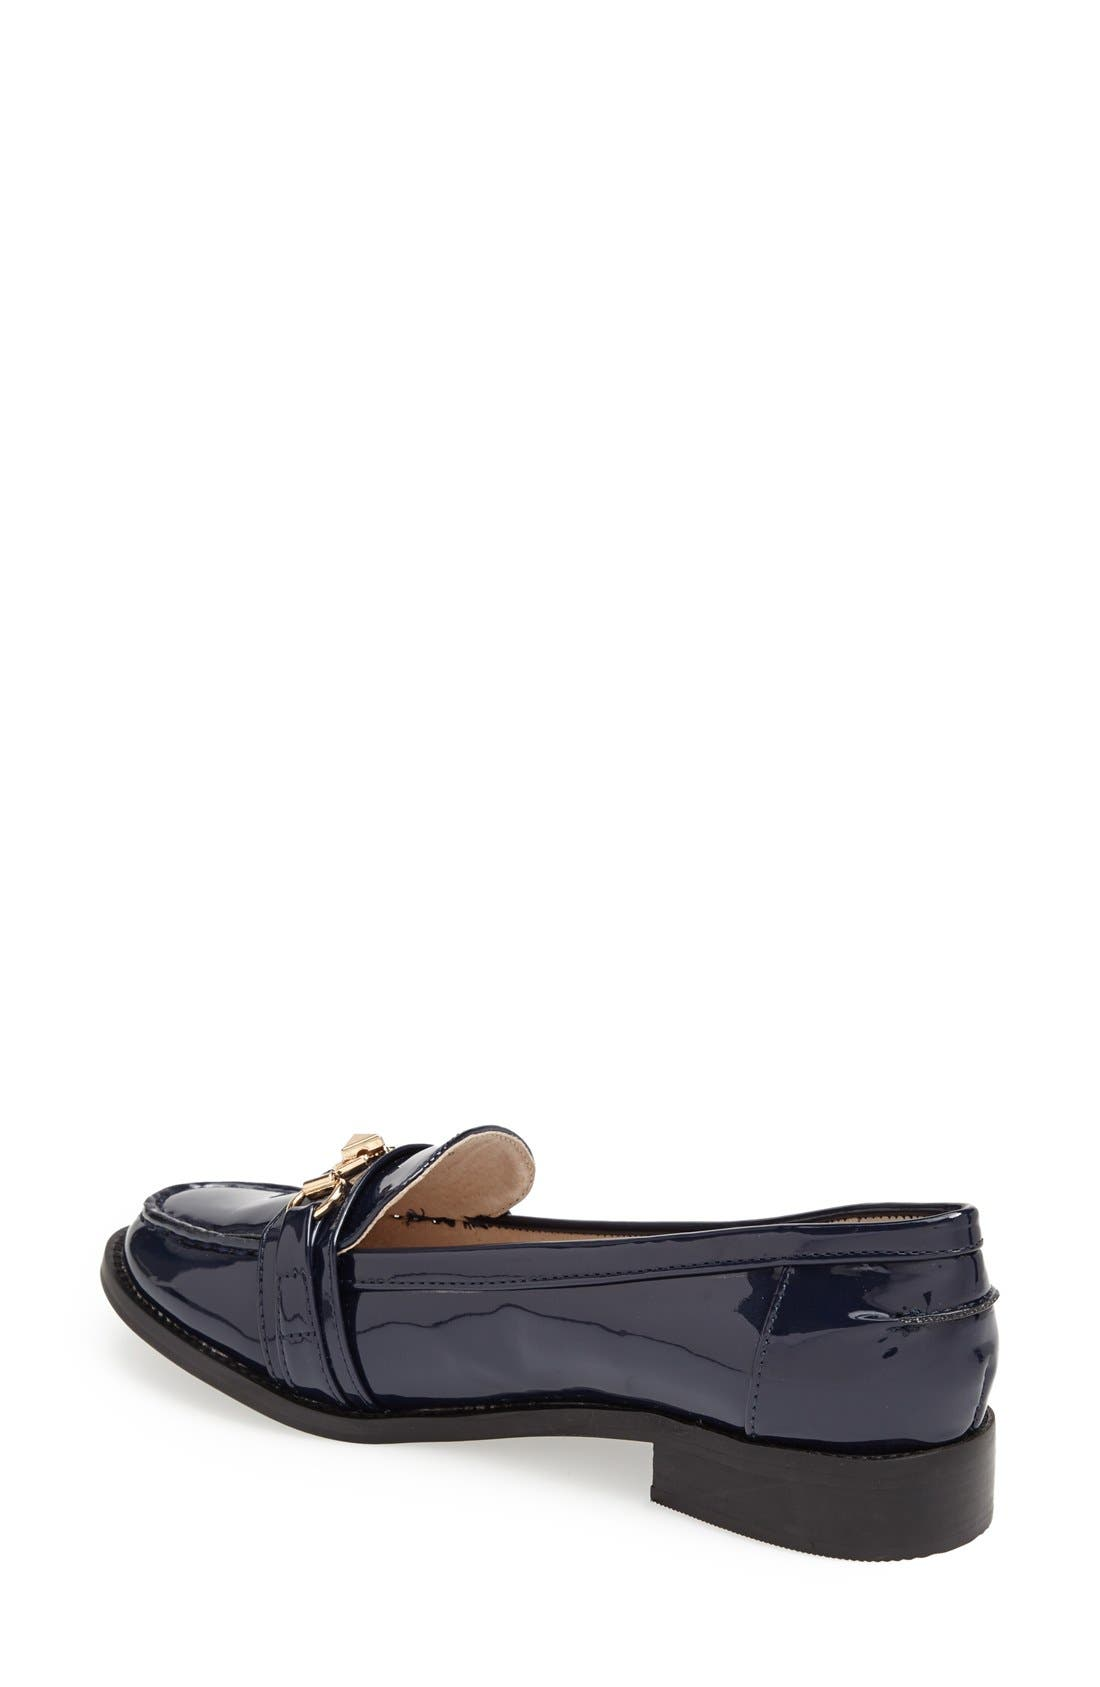 Alternate Image 4  - Topshop 'Latch' Trim Loafer (Women)